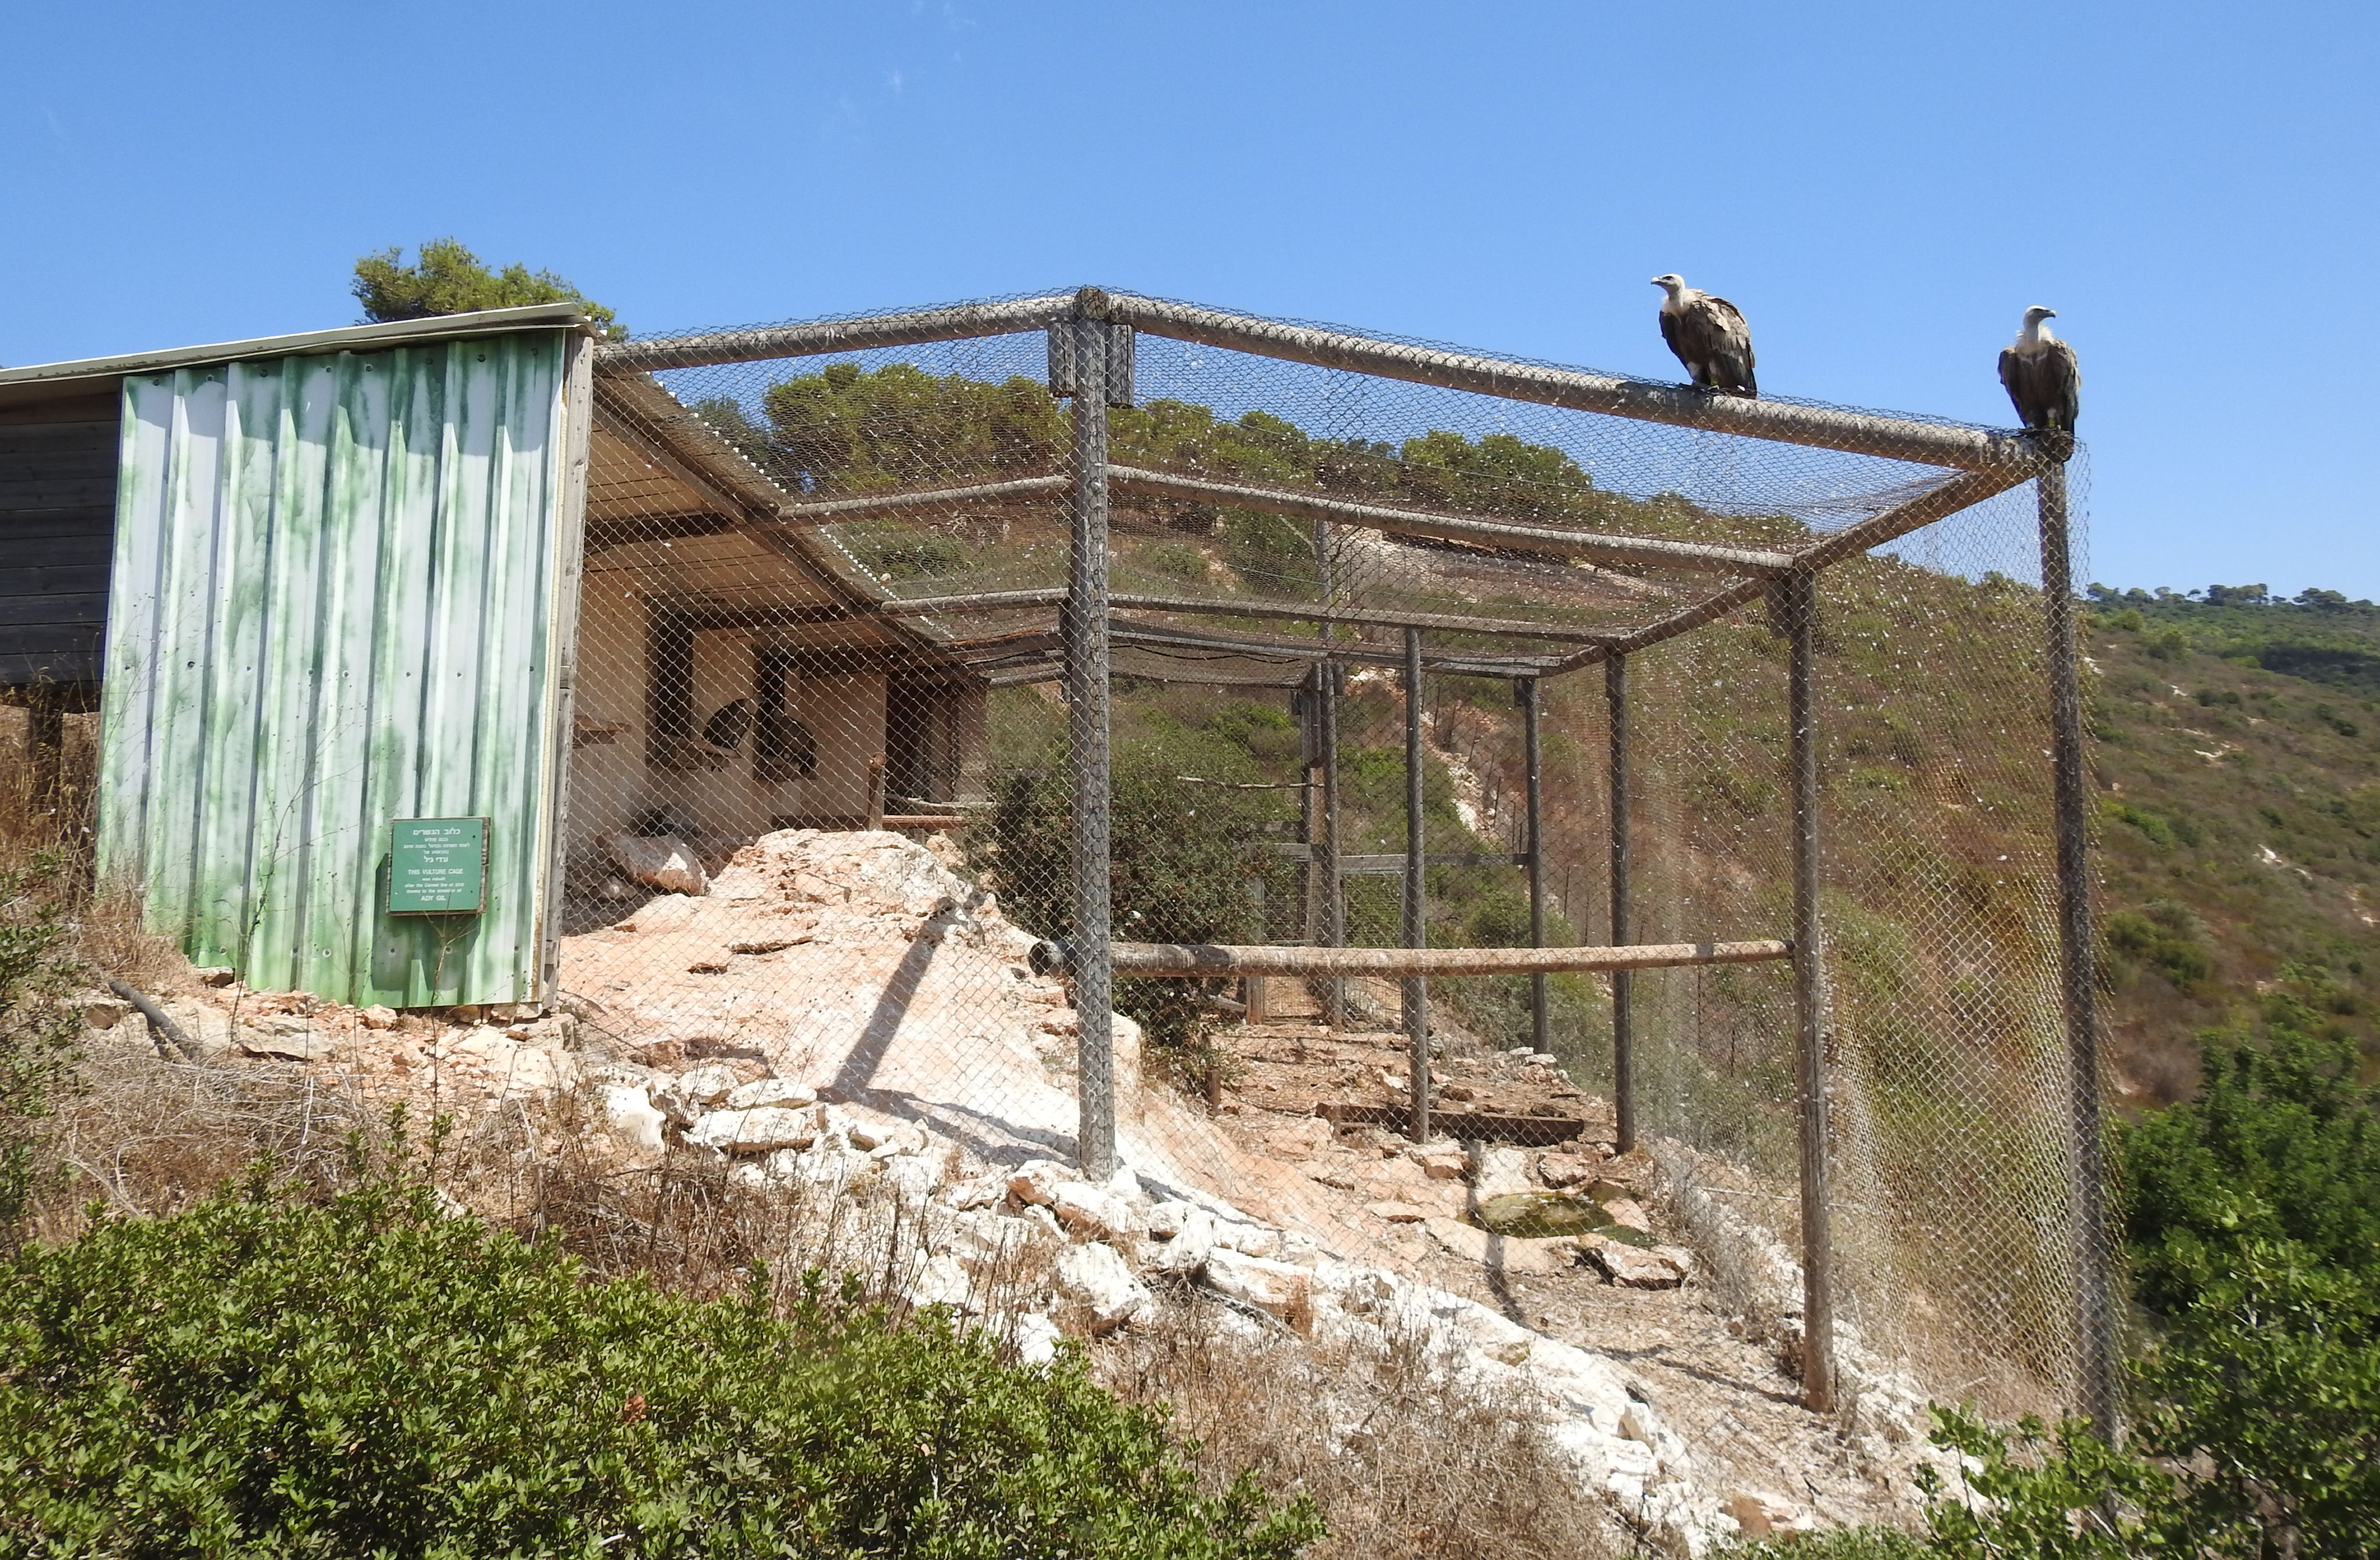 The vulture cage